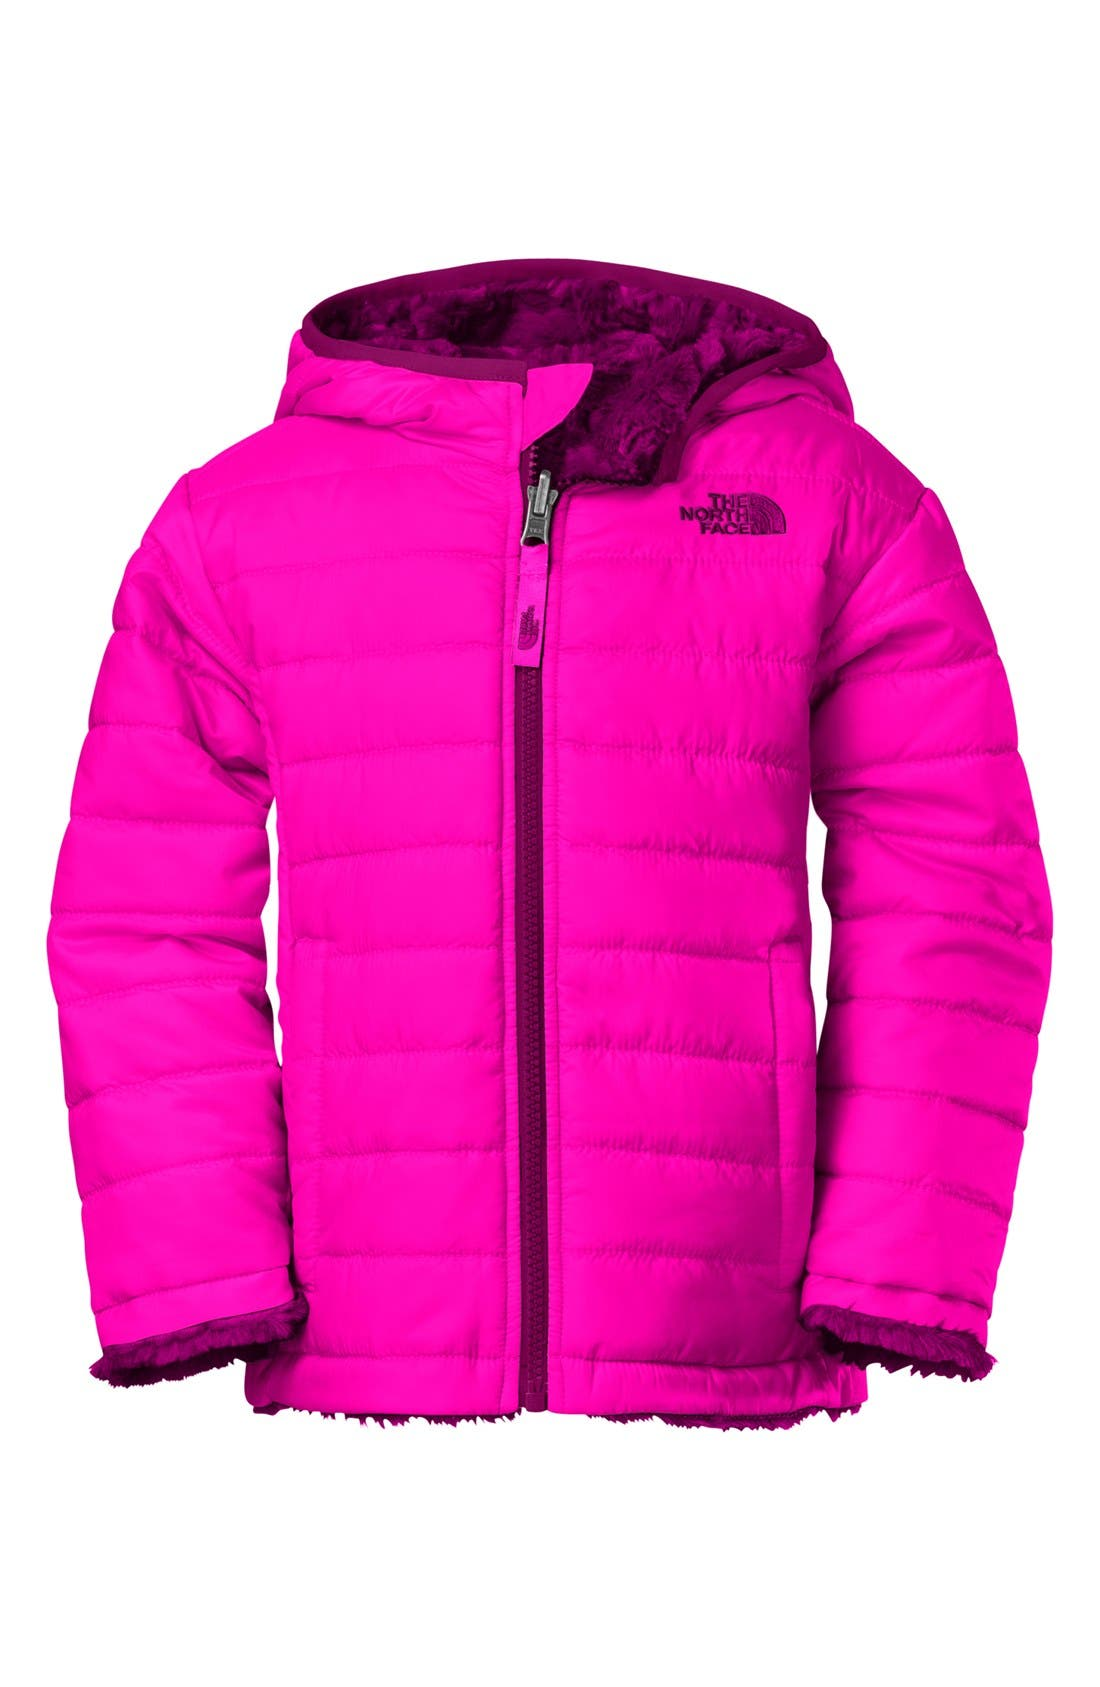 Main Image - The North Face 'Mossbud' Reversible Jacket (Toddler Girls) (Online Only)